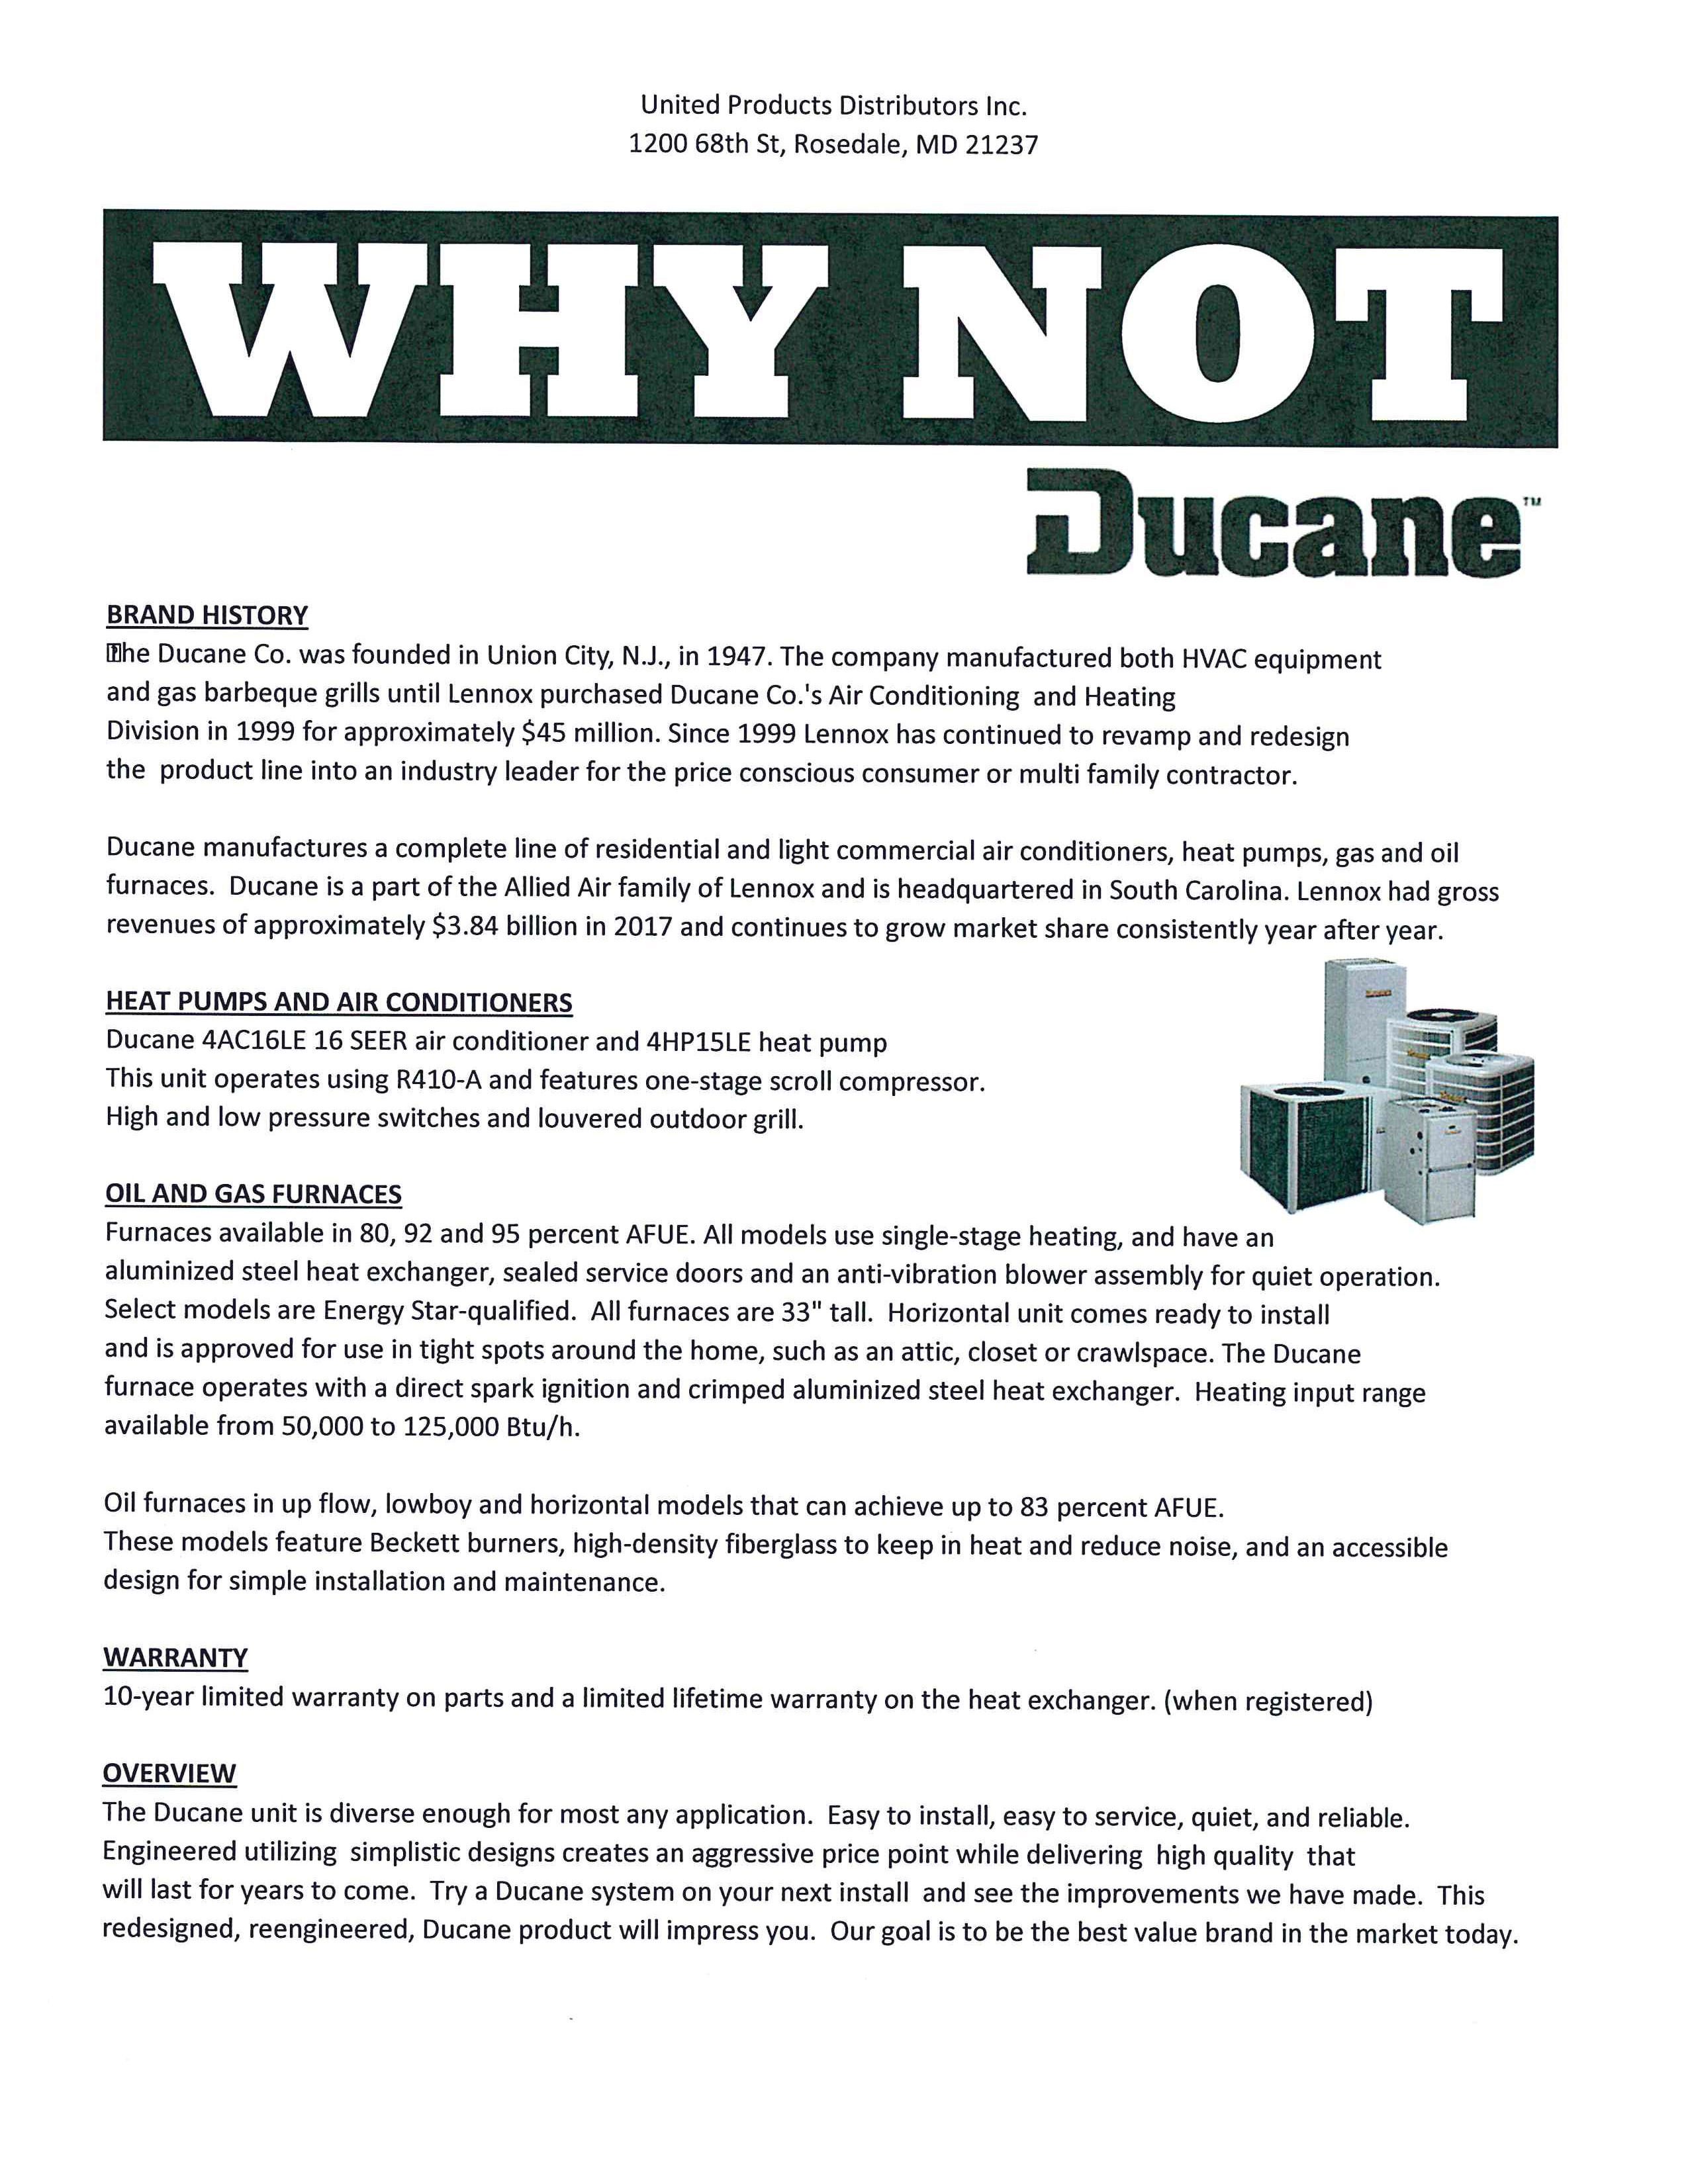 Why Not Ducane! A complete line of residential & light